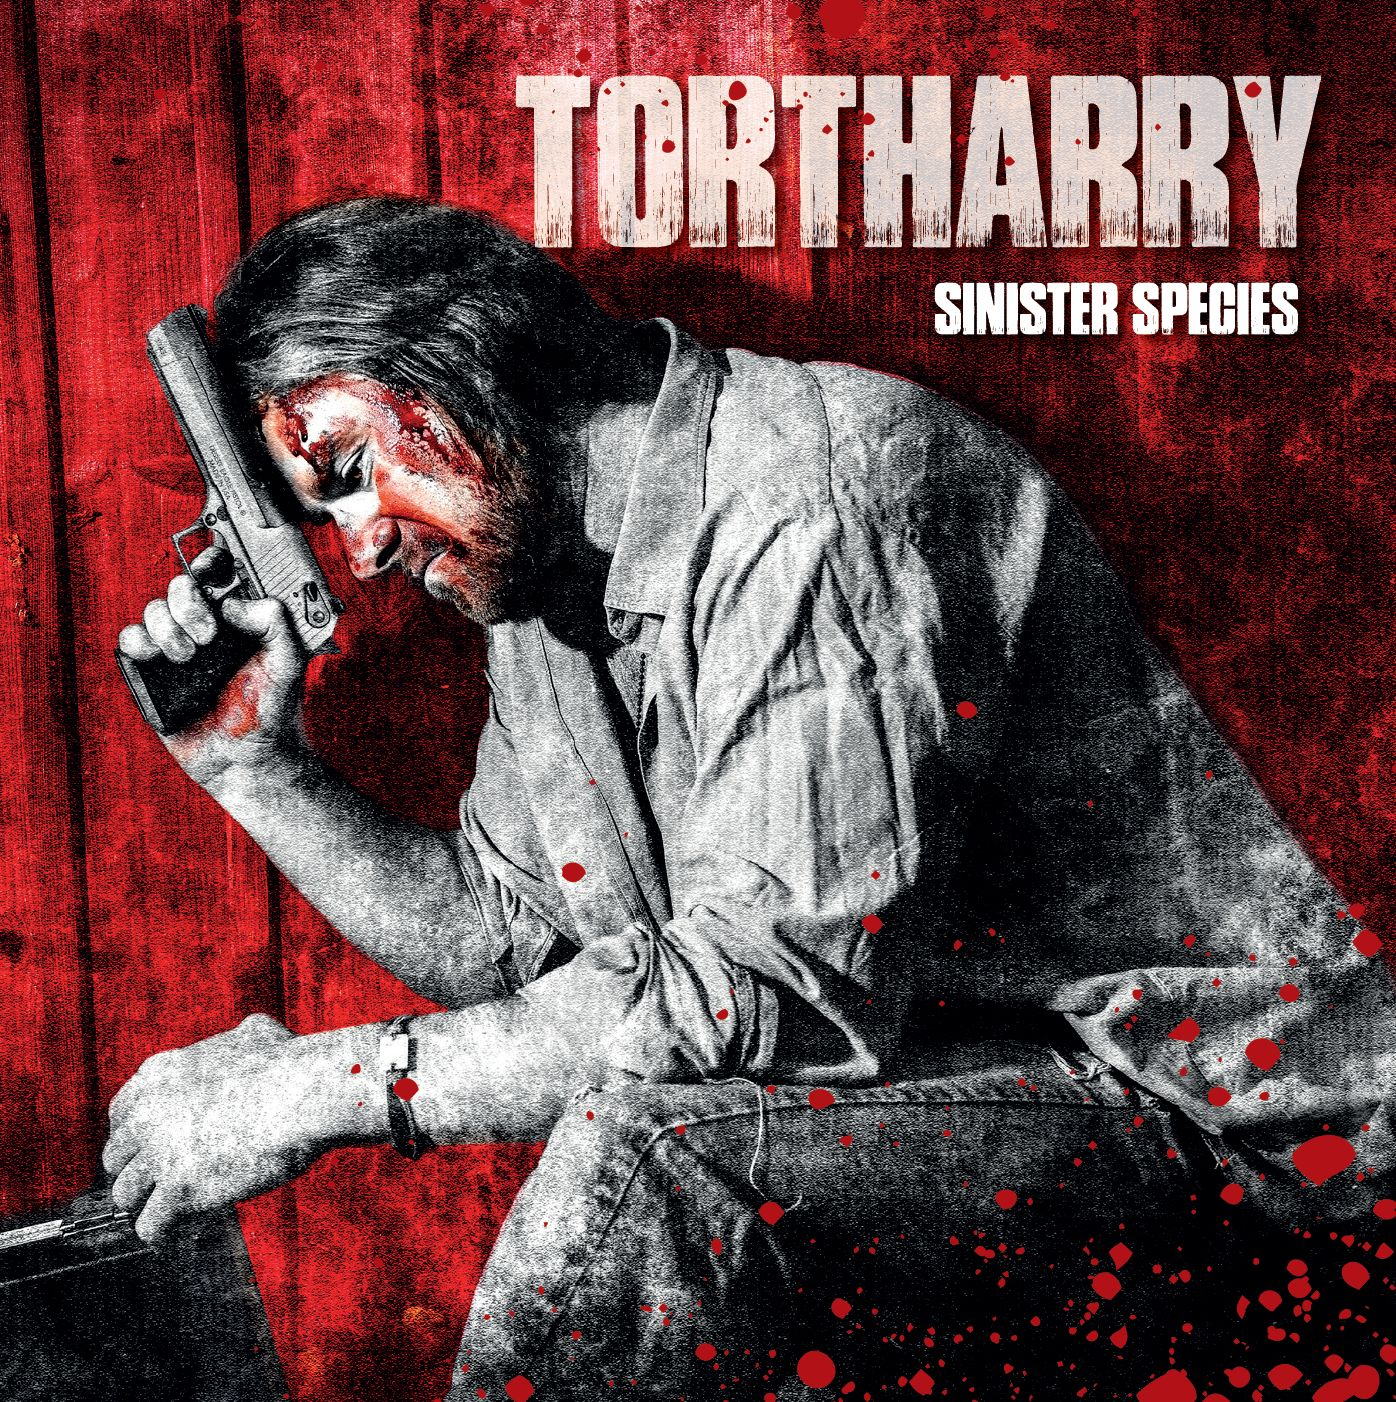 TORTHARRY Sinister Species (LP červené)